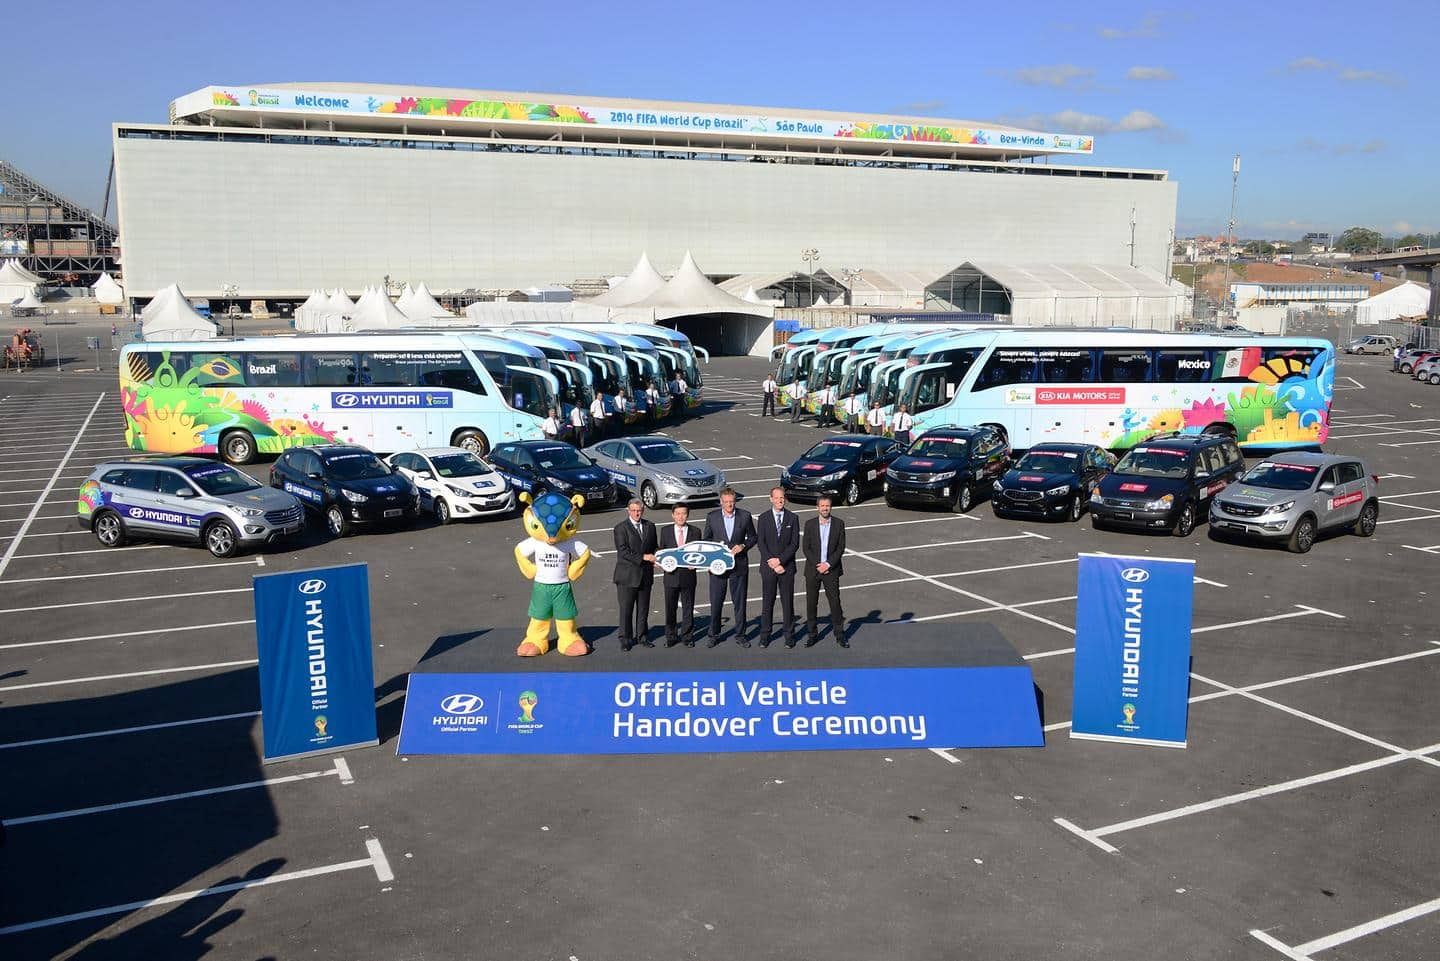 Hyundai Motor Delivers Vehicles for 2014 FIFA World Cup BrazilTM